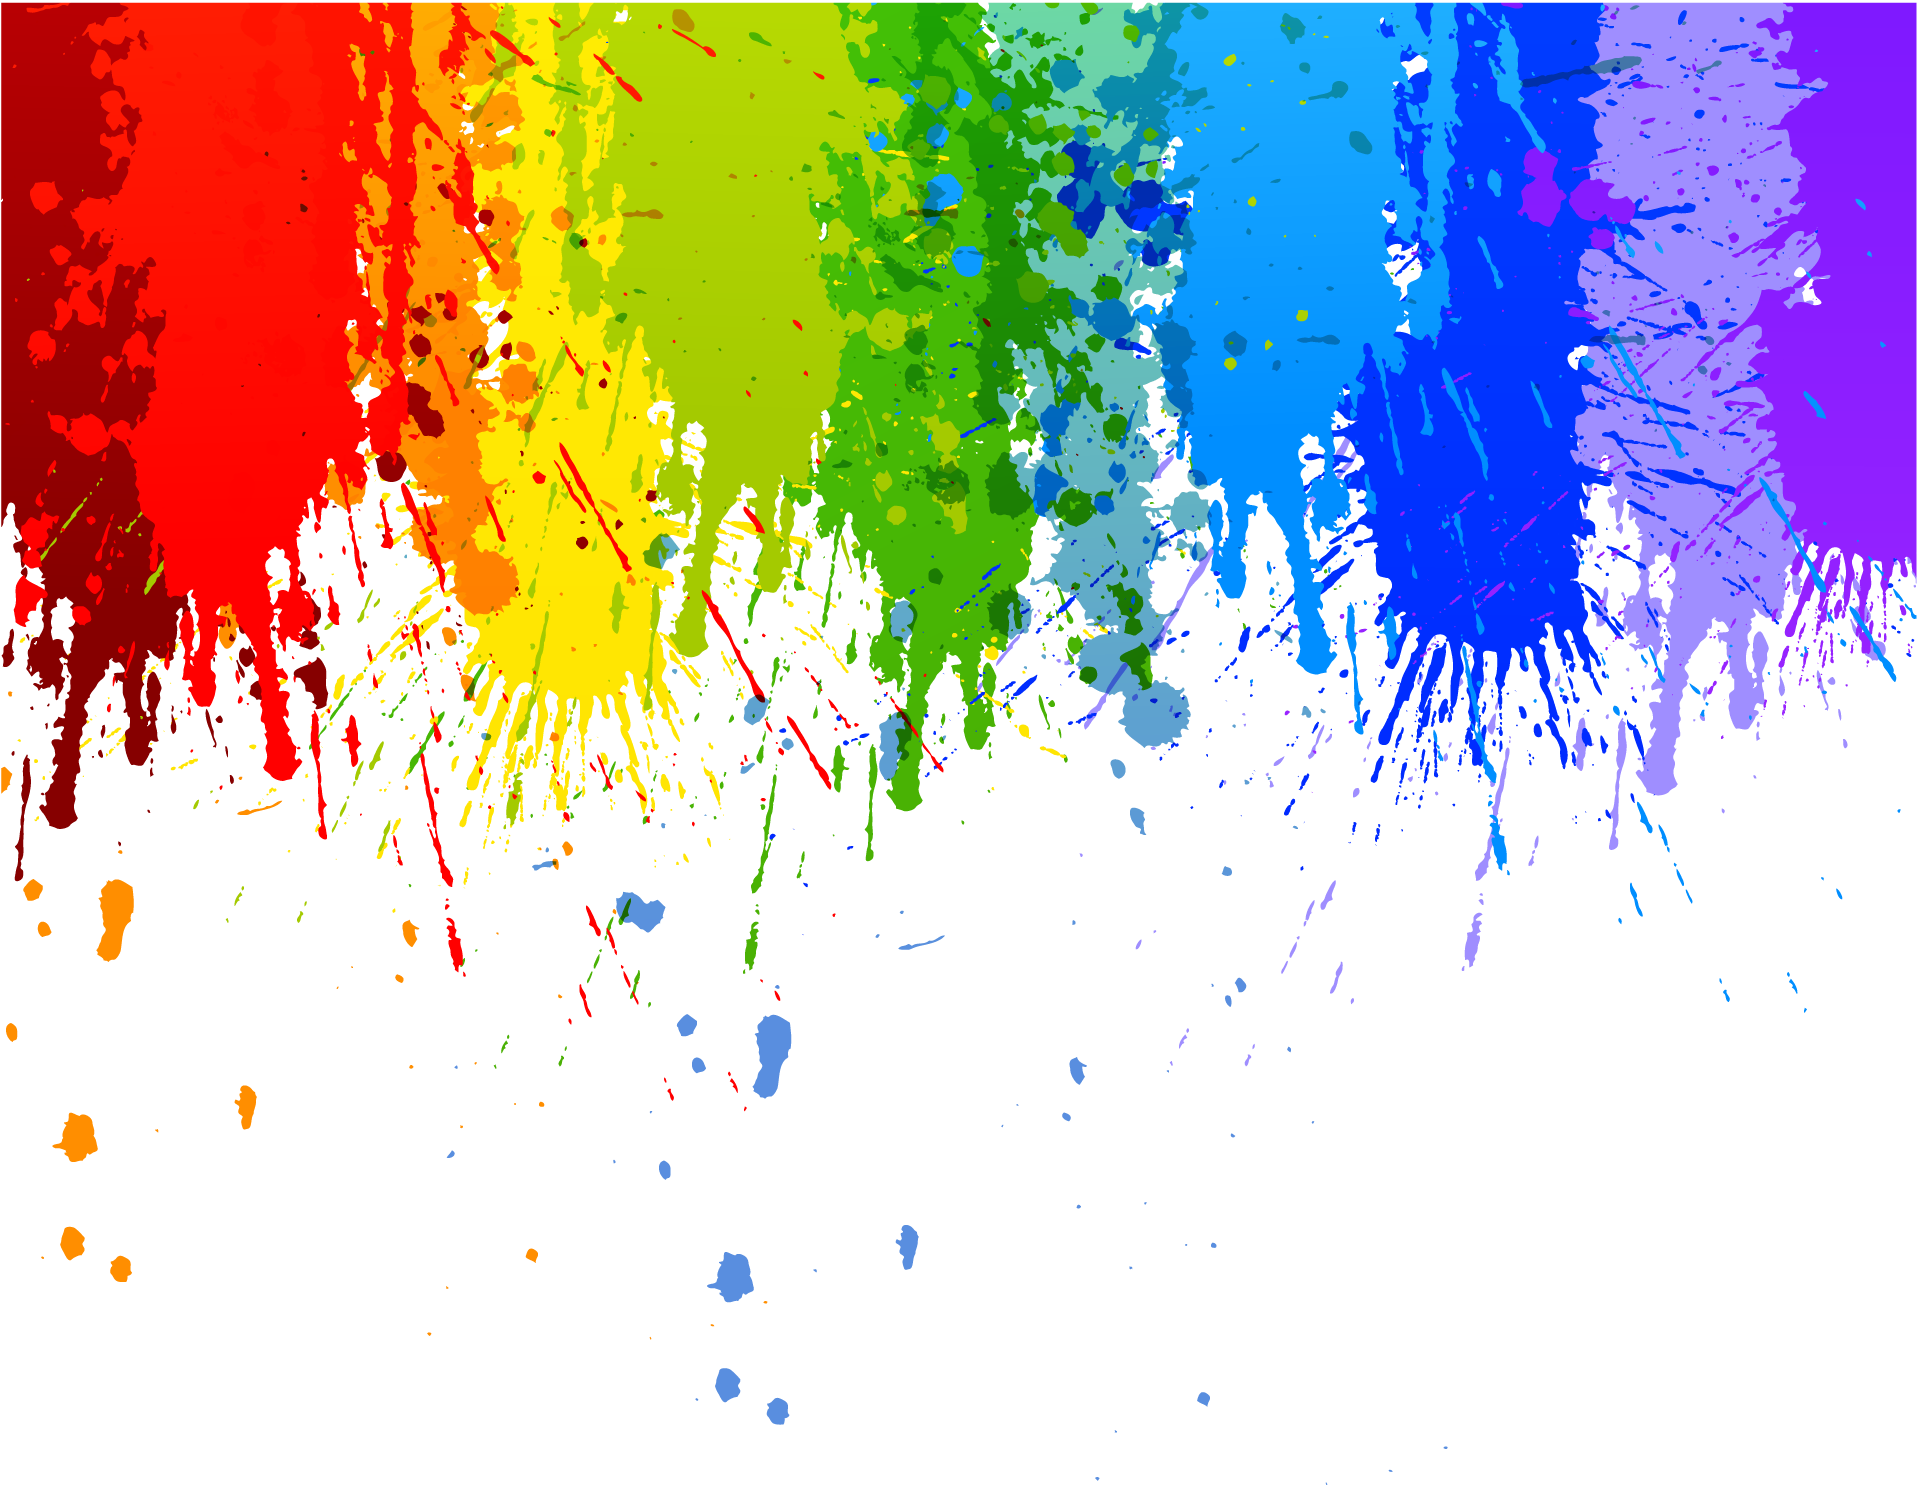 Windows paint png transparent background. Rainbow colour splash drip